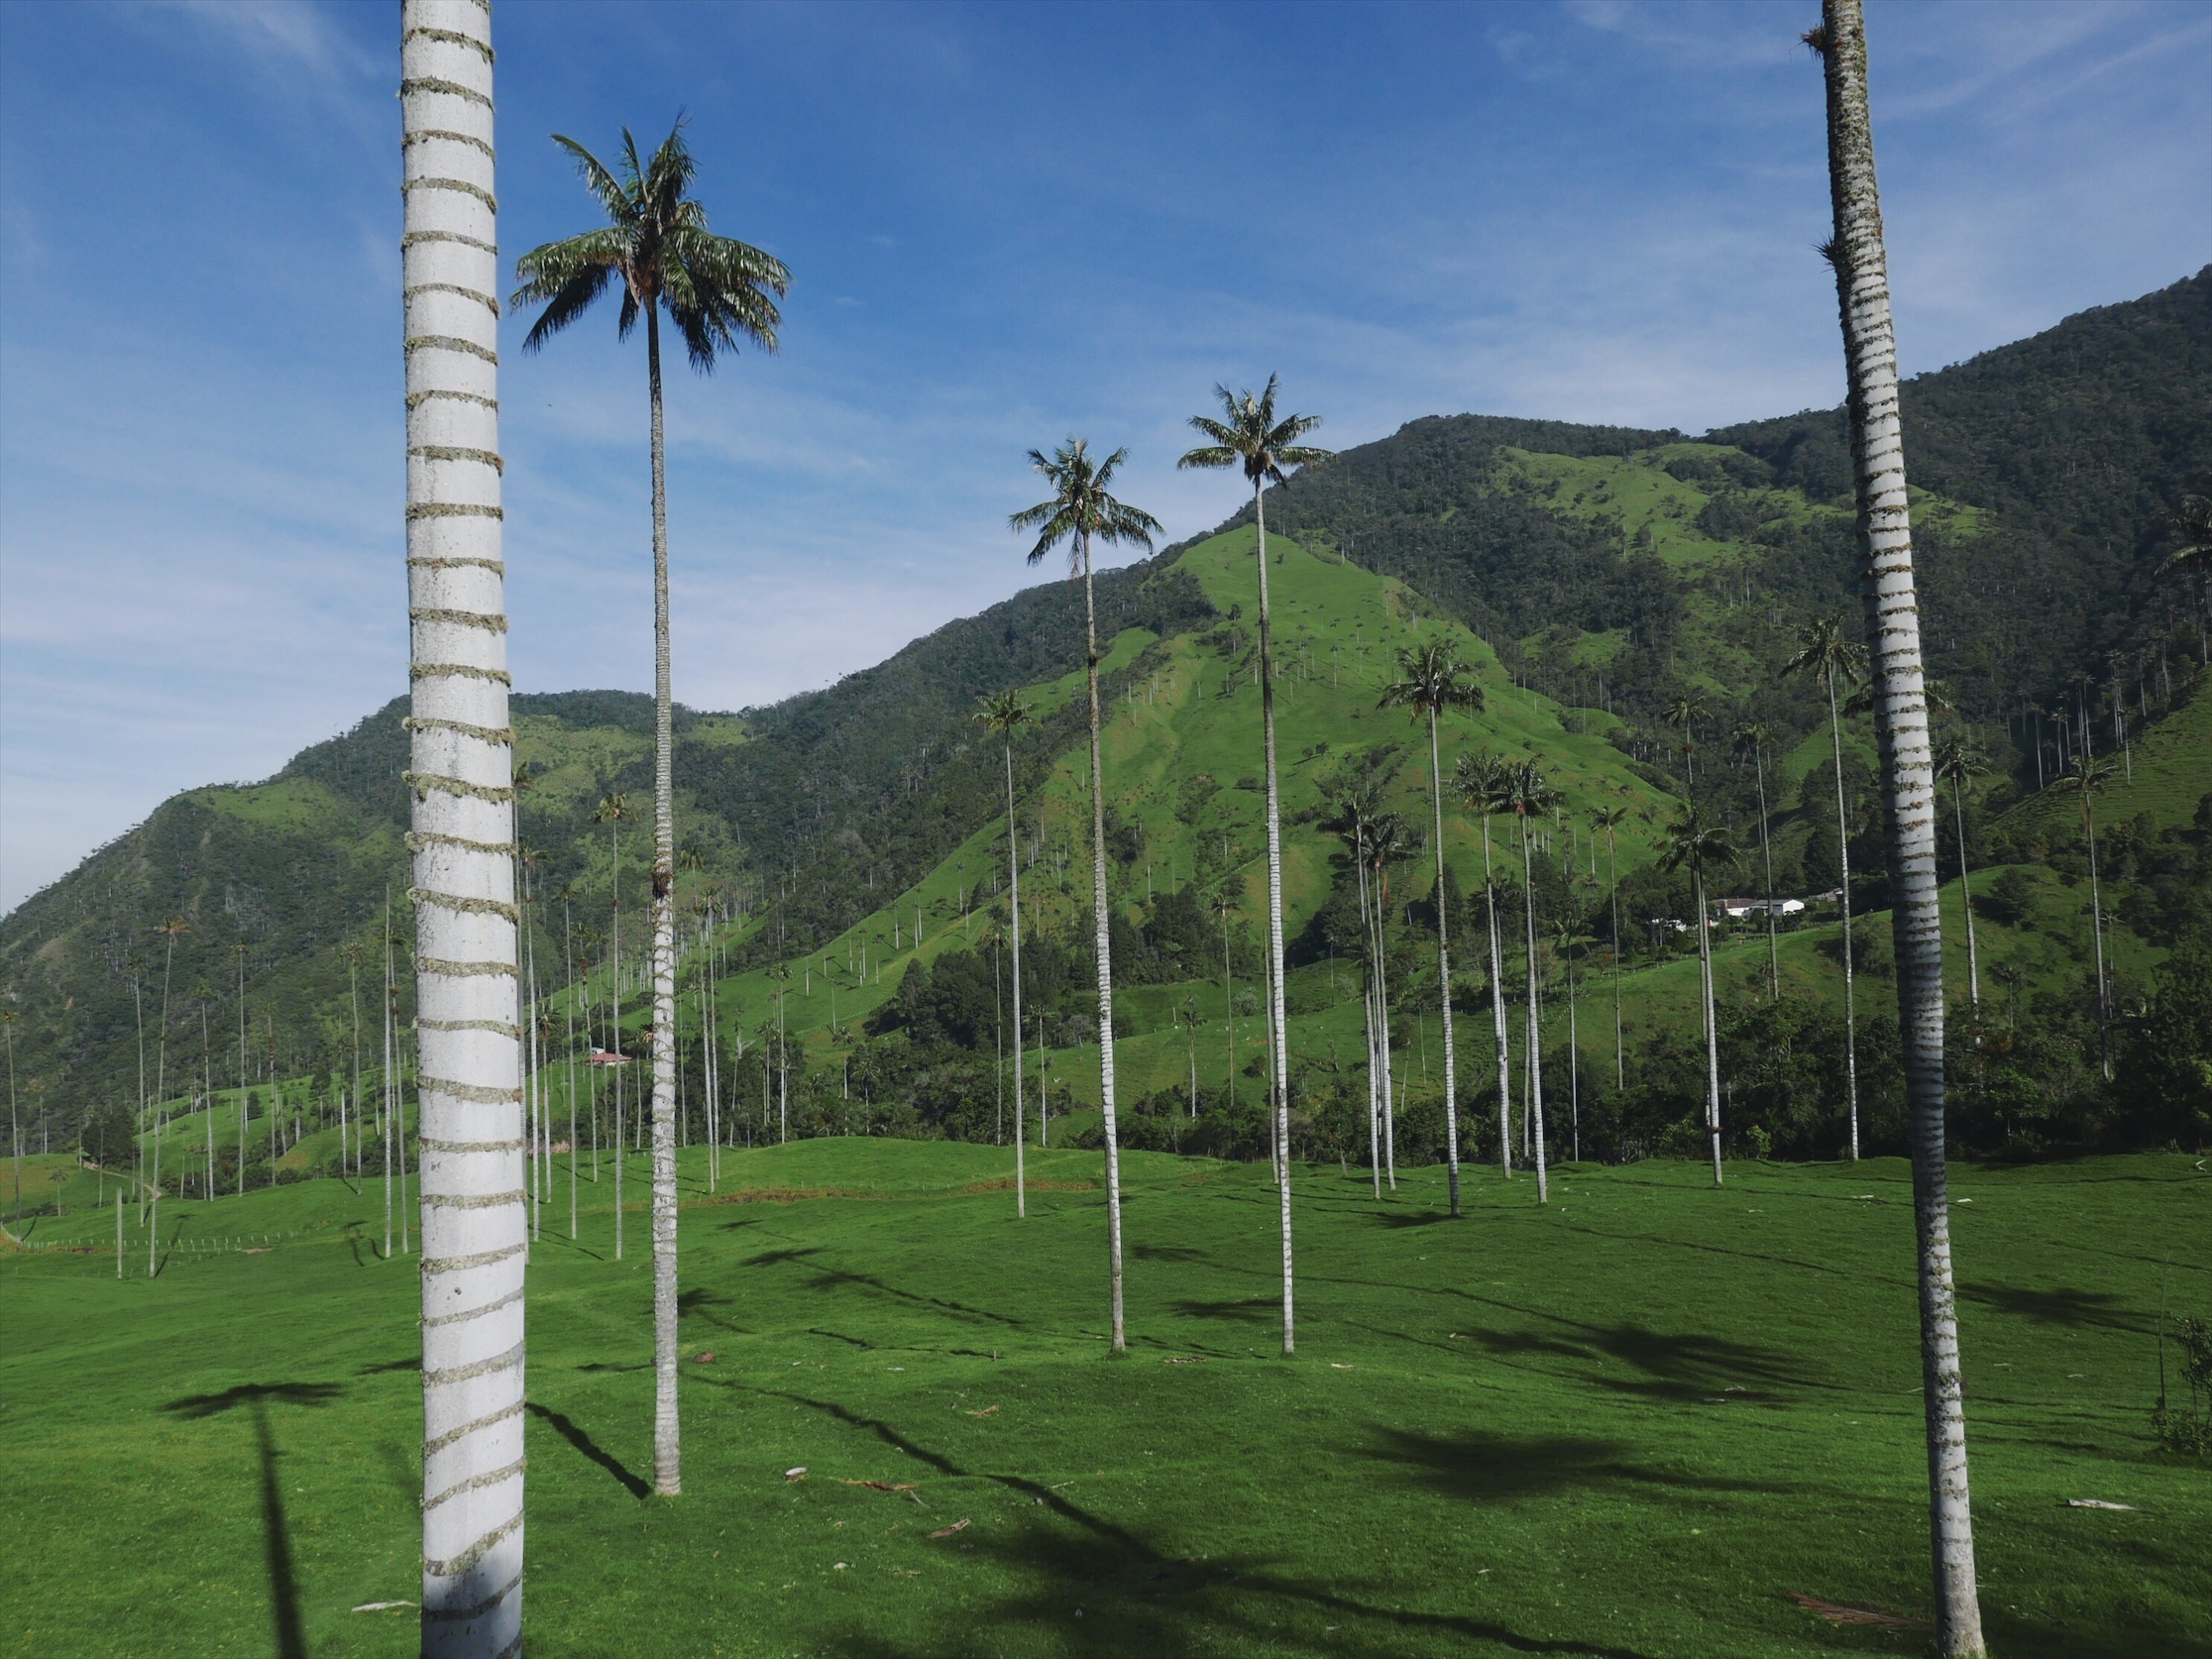 While the wax palms of the Cocora Valley are natural, the surreal scene along the valley floor is not. Grazing cattle have kept all aspiring palm seedlings at bay while the existing trees continue to grow to almost two hundred feet tall. The resulting landscape is one of those bittersweet beautiful accidents, where the contrasting trees are actually the last remnants of a once healthy forest. Of course, in the meantime, the grey trunks against the impossible green make for some incredible photos. That, or a super challenging frisbee golf course.